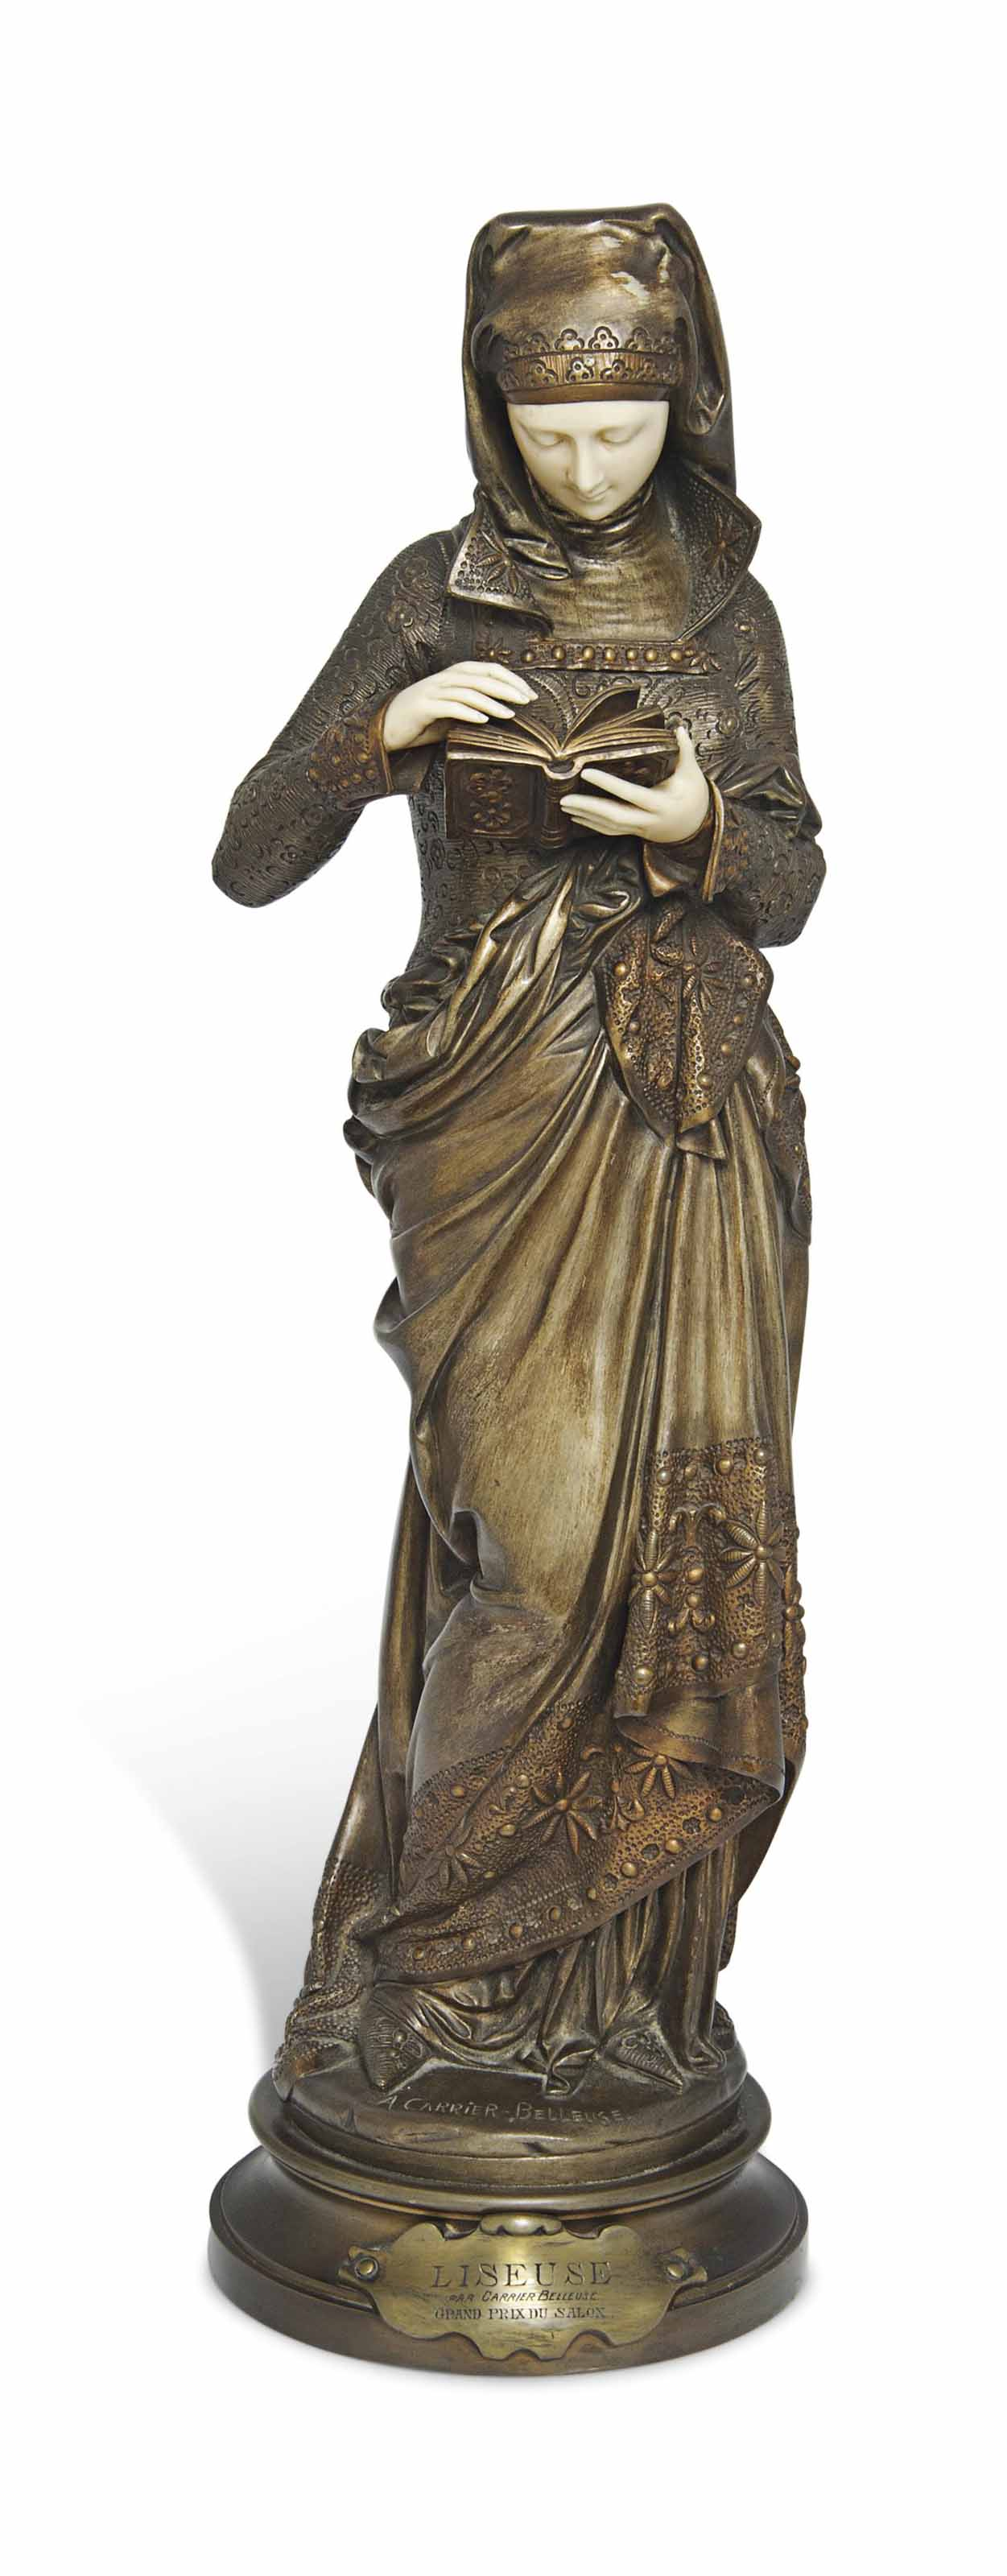 A FRENCH BRONZE AND IVORY FIGU